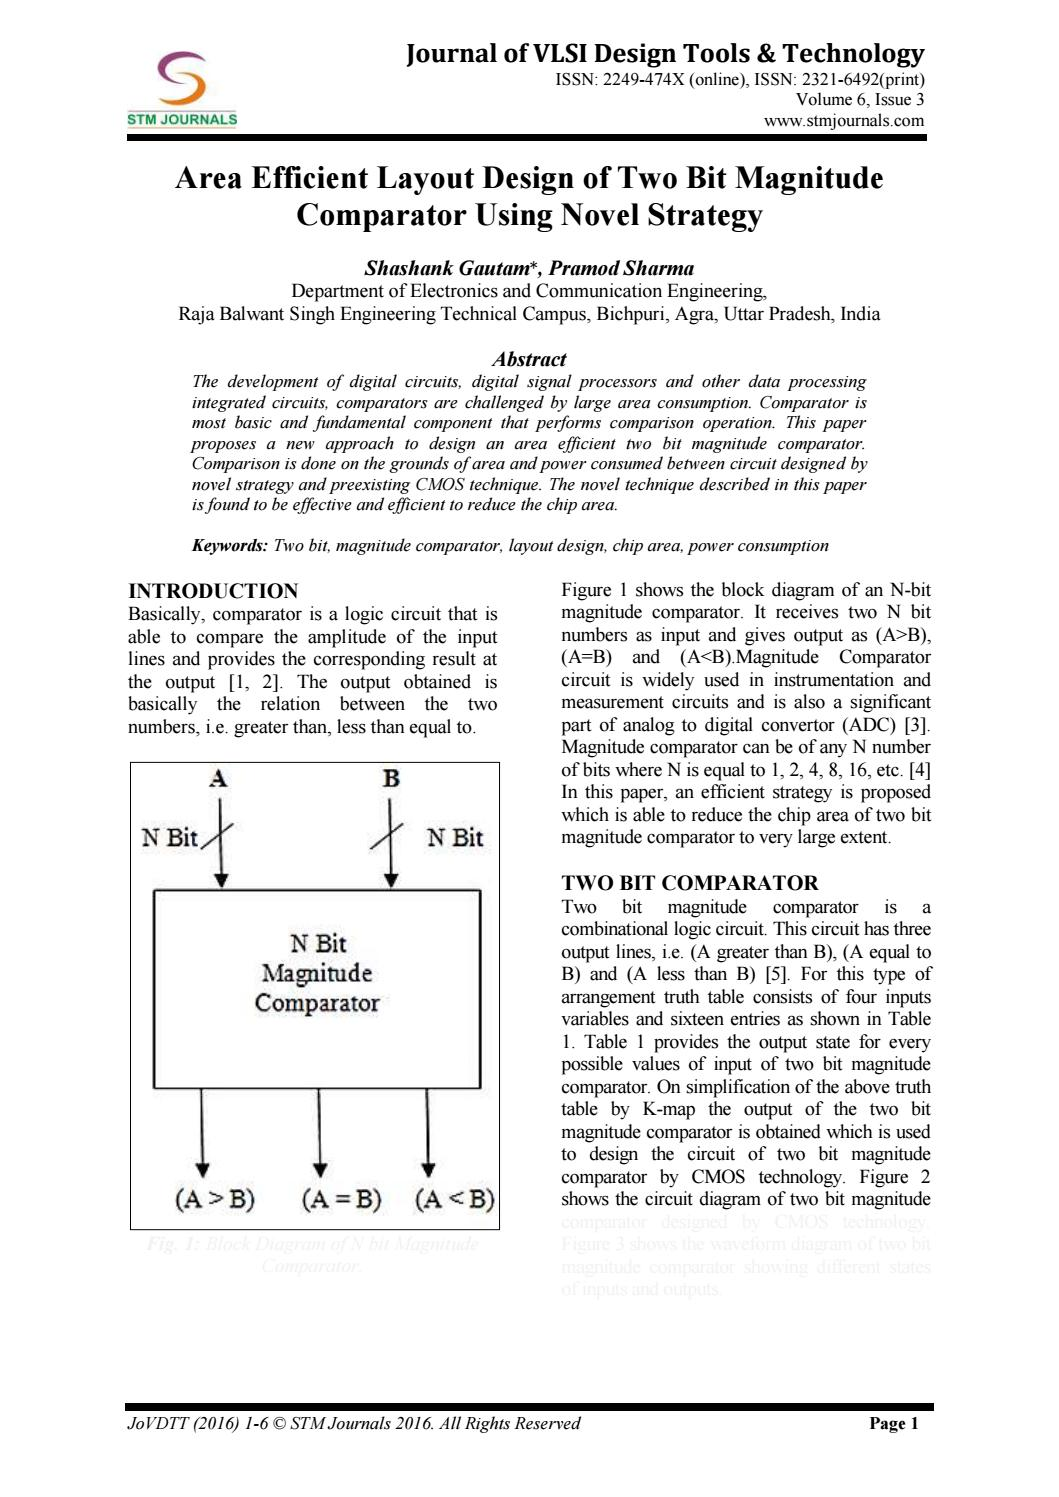 hight resolution of journal of vlsi design tools technology vol 6 issue 3 by stm journals issuu